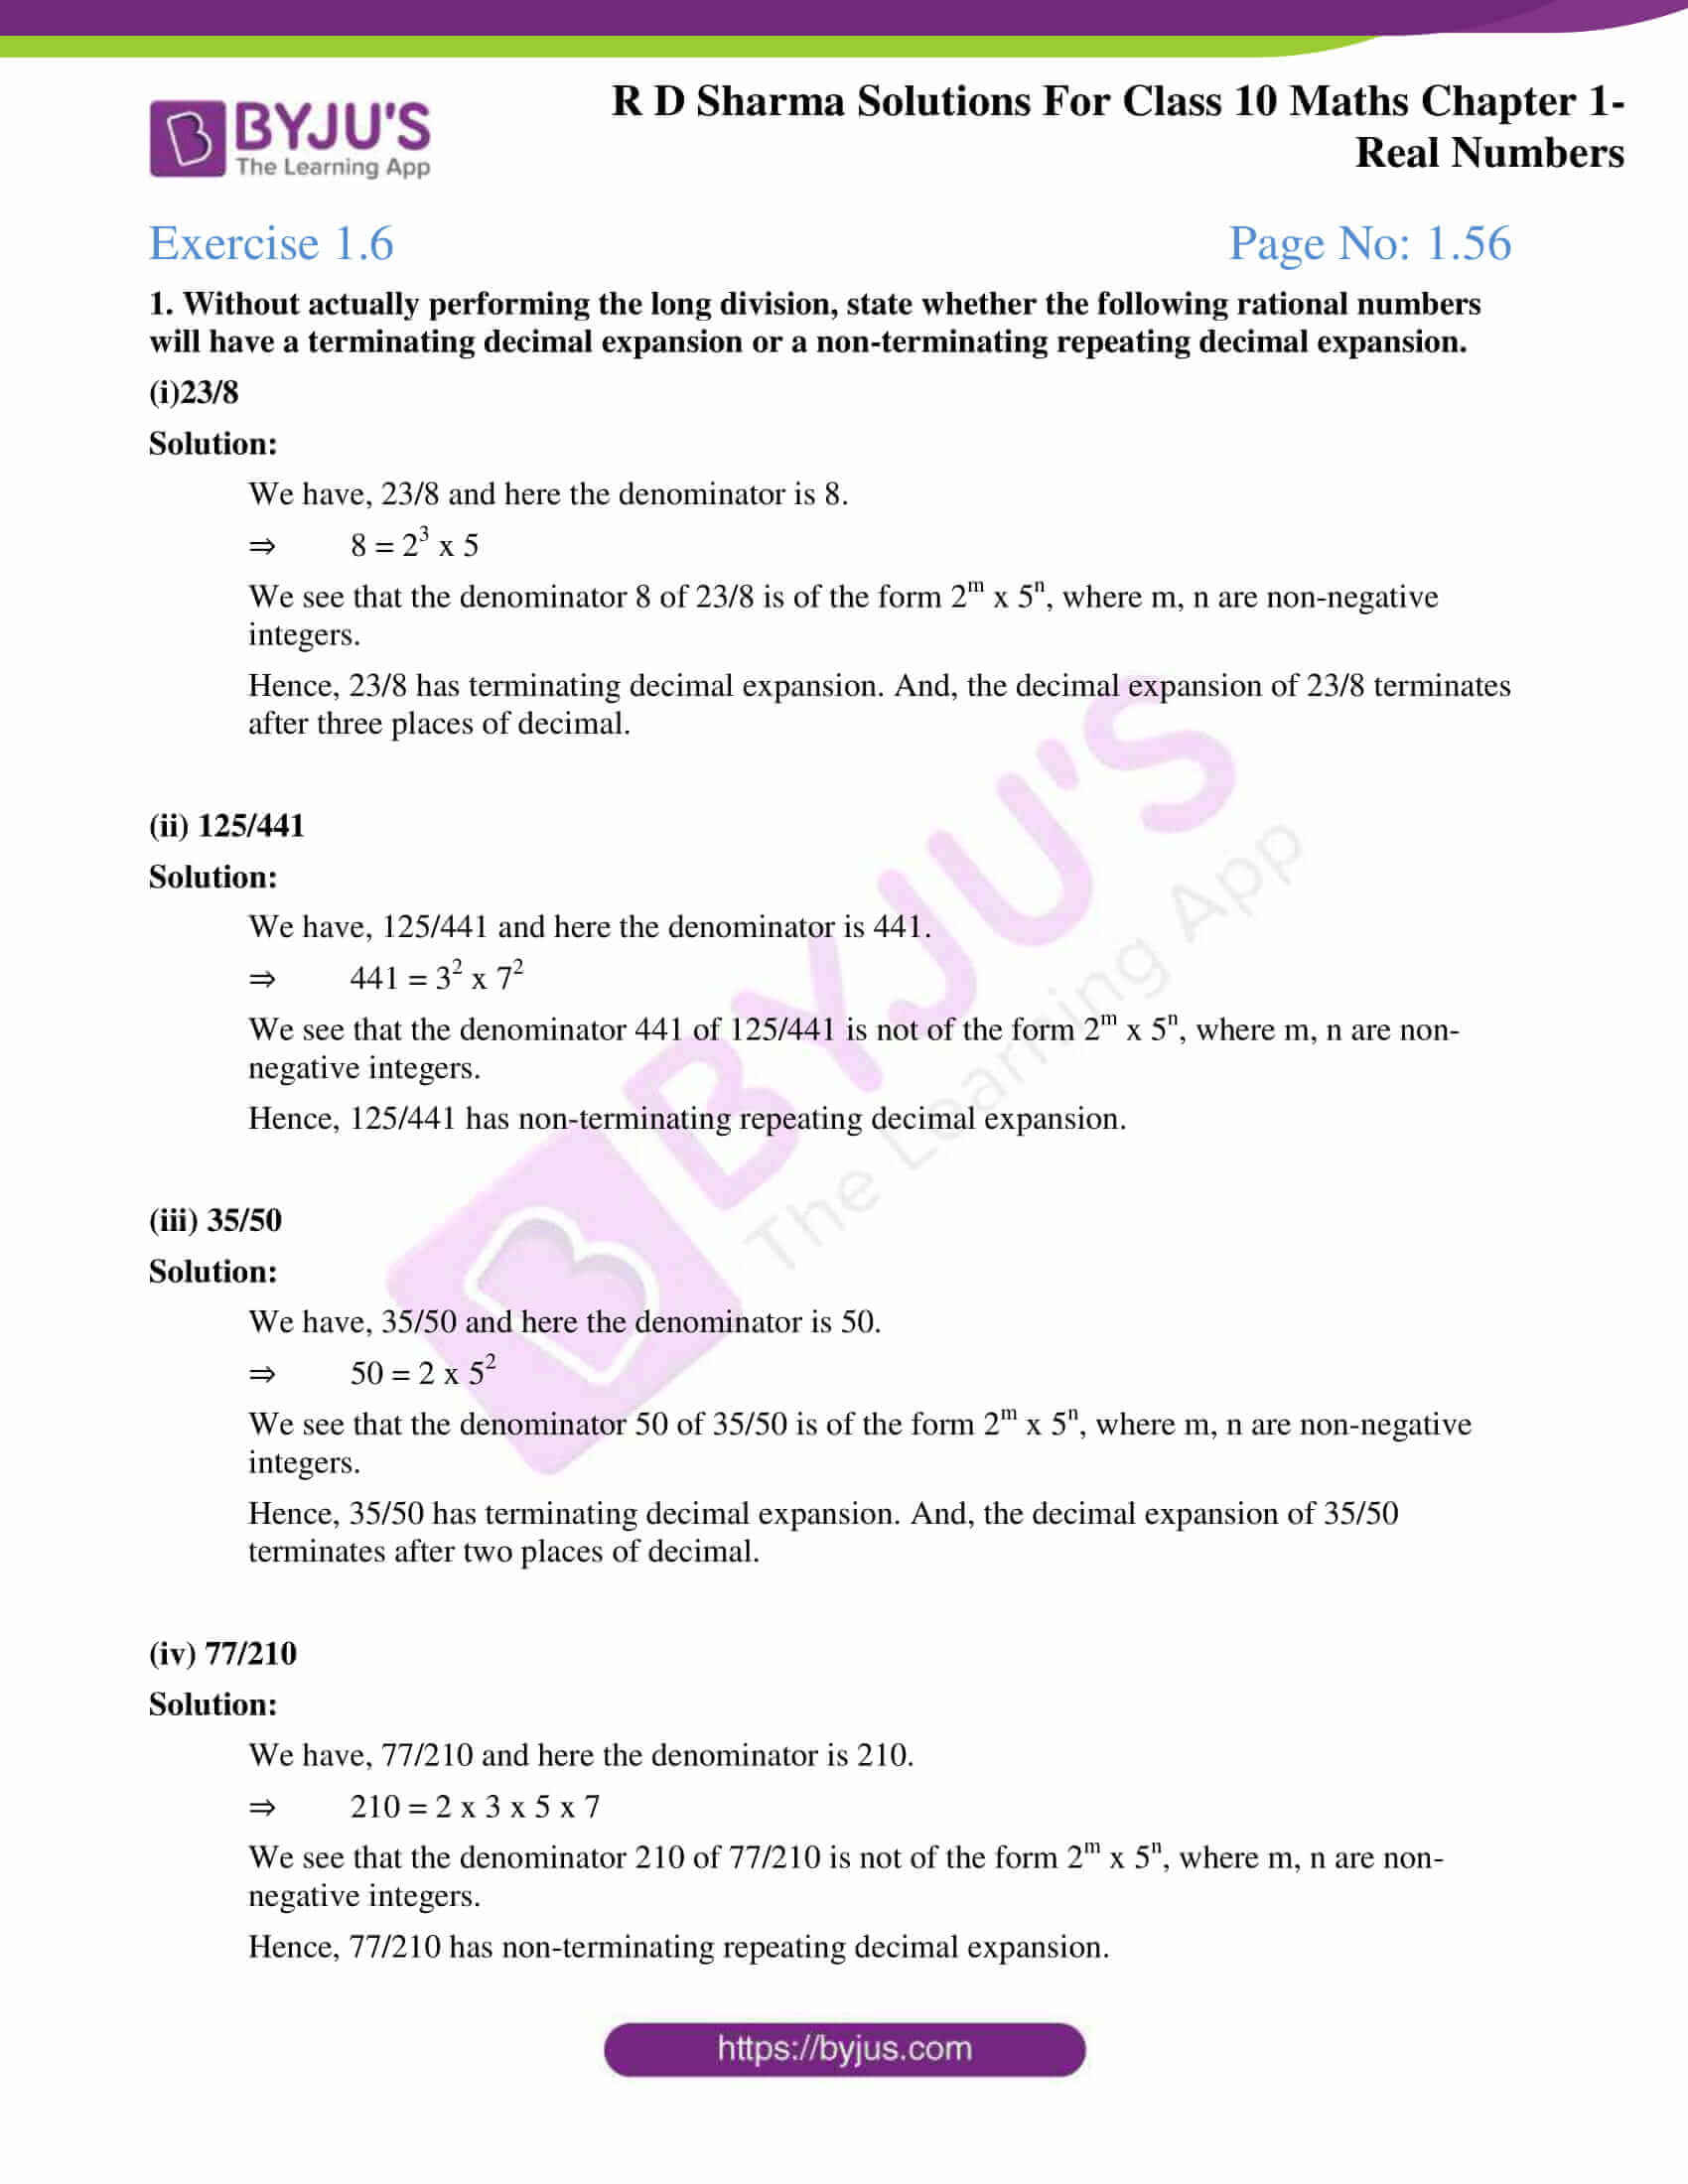 rd sharma class 10 chapter 1 real numbers solutions exercise 6 1